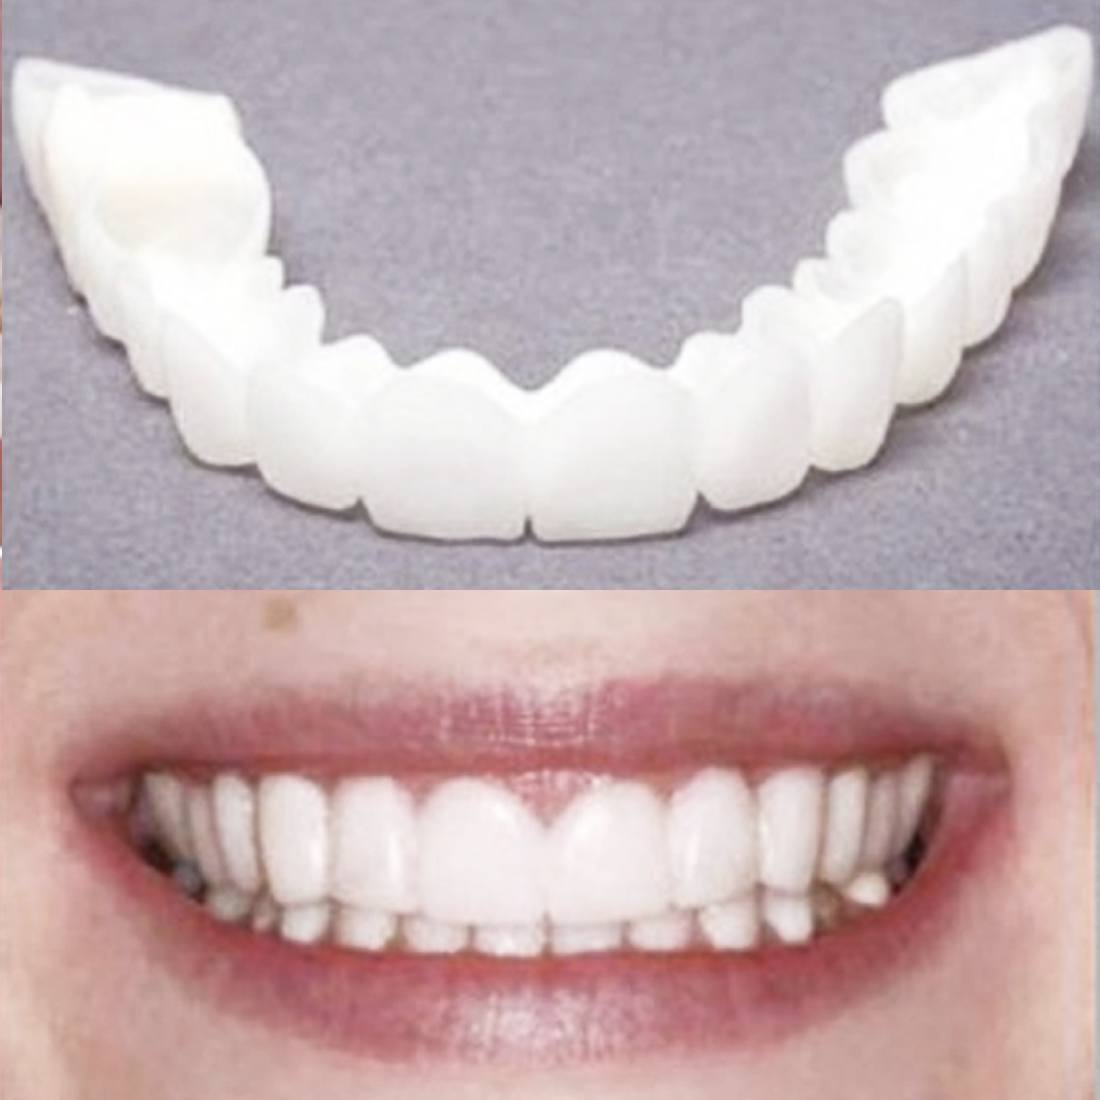 Silicone Perfect Smile Veneers Teeth Upper Beauty Tool Teeth For Men Women Natural Cosmetic Fake Tooth Cover Orthodontics Tool